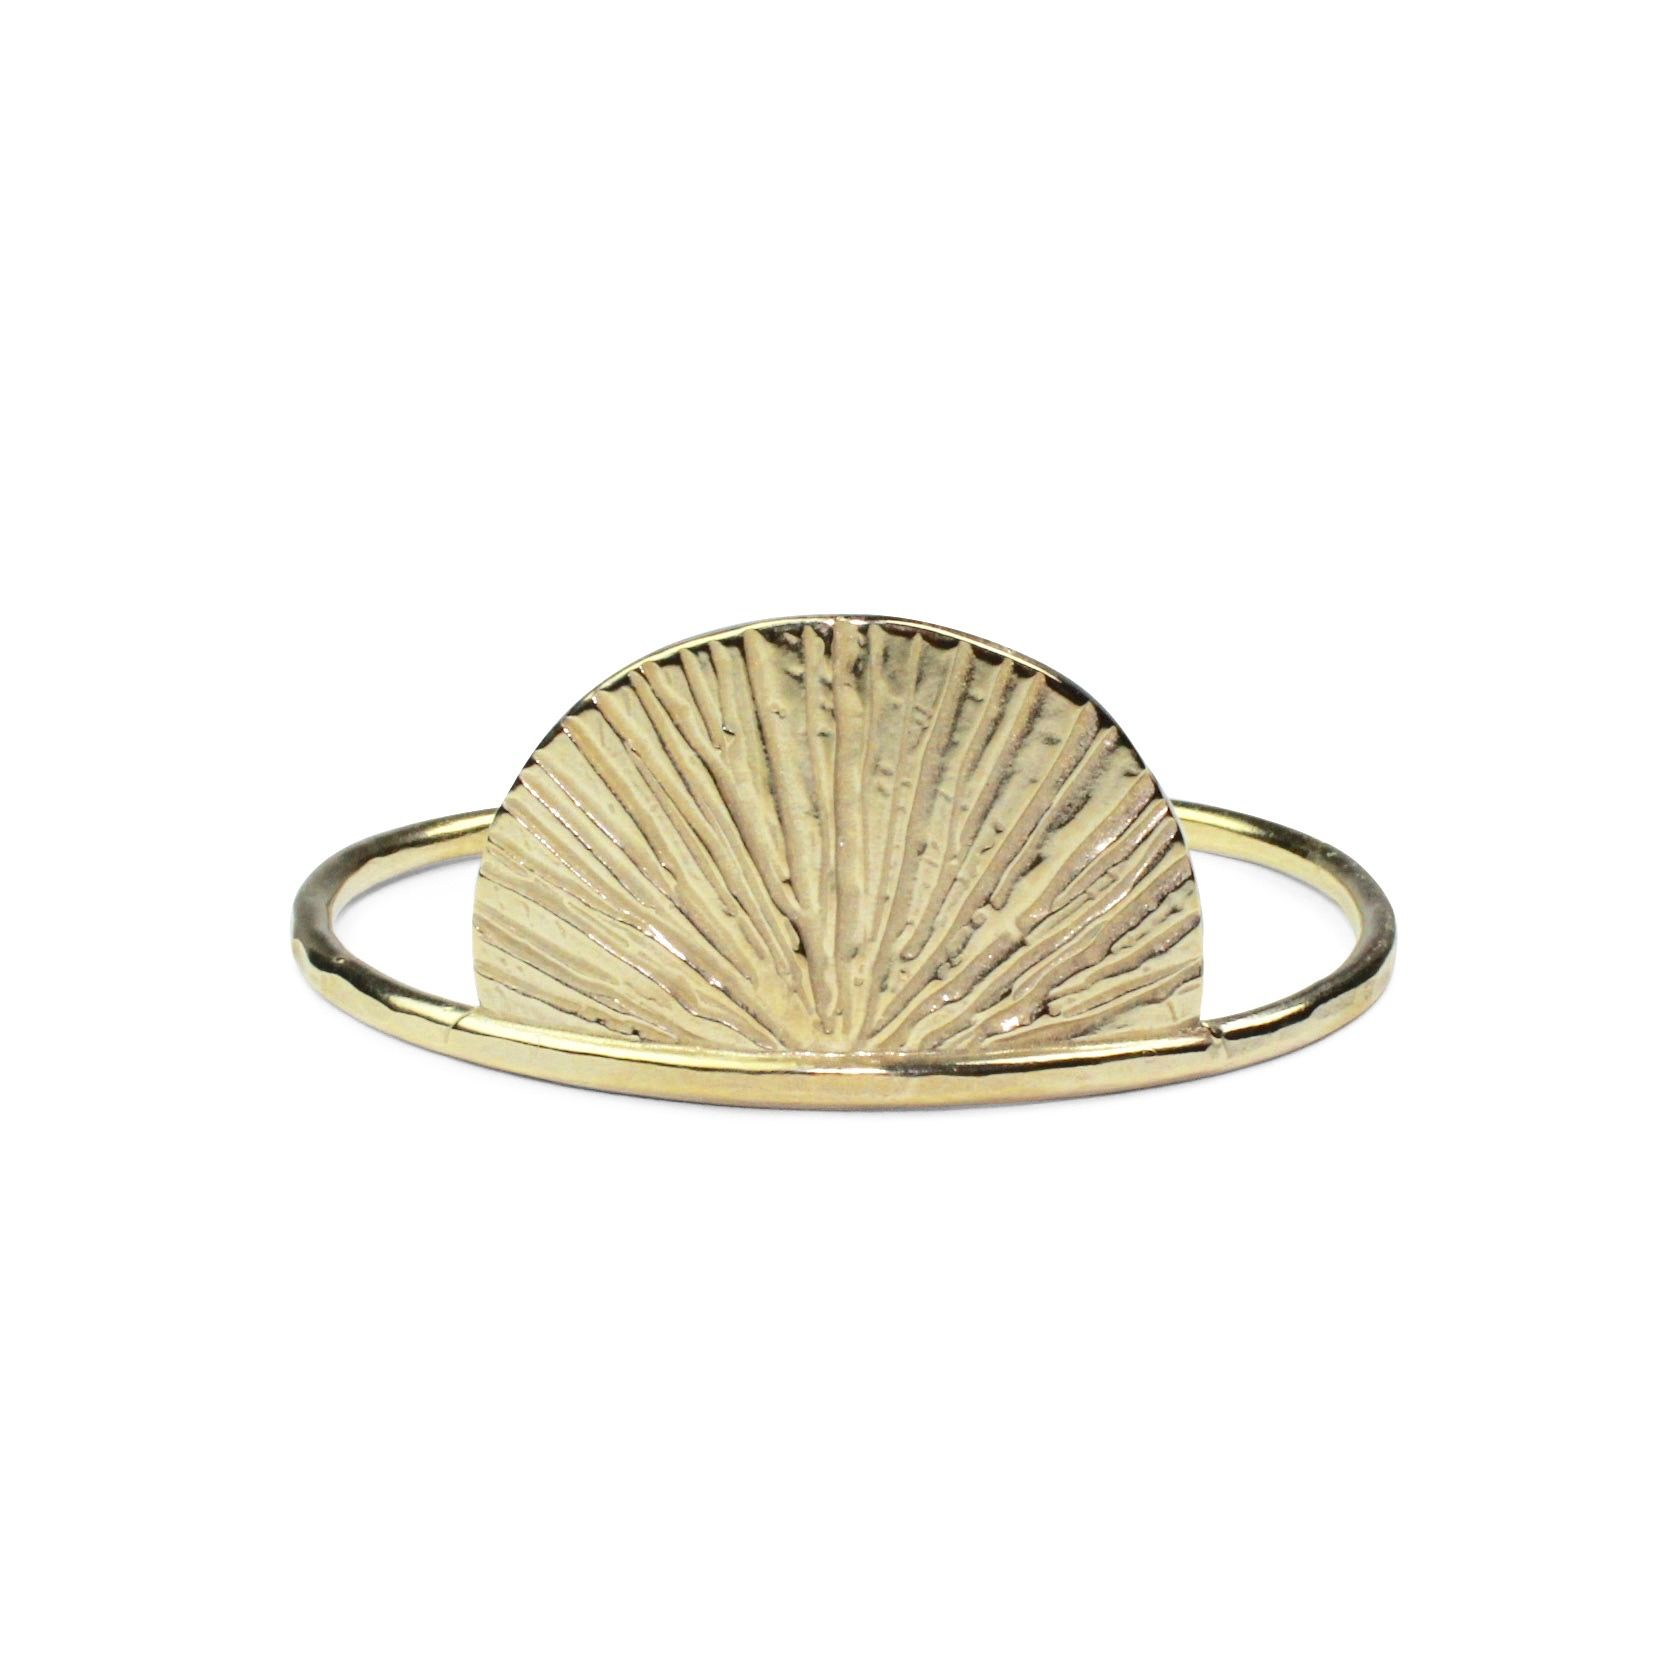 SUNRISE CUFF IN BRASS // RITES COLLECTION // by Amanda Hunt